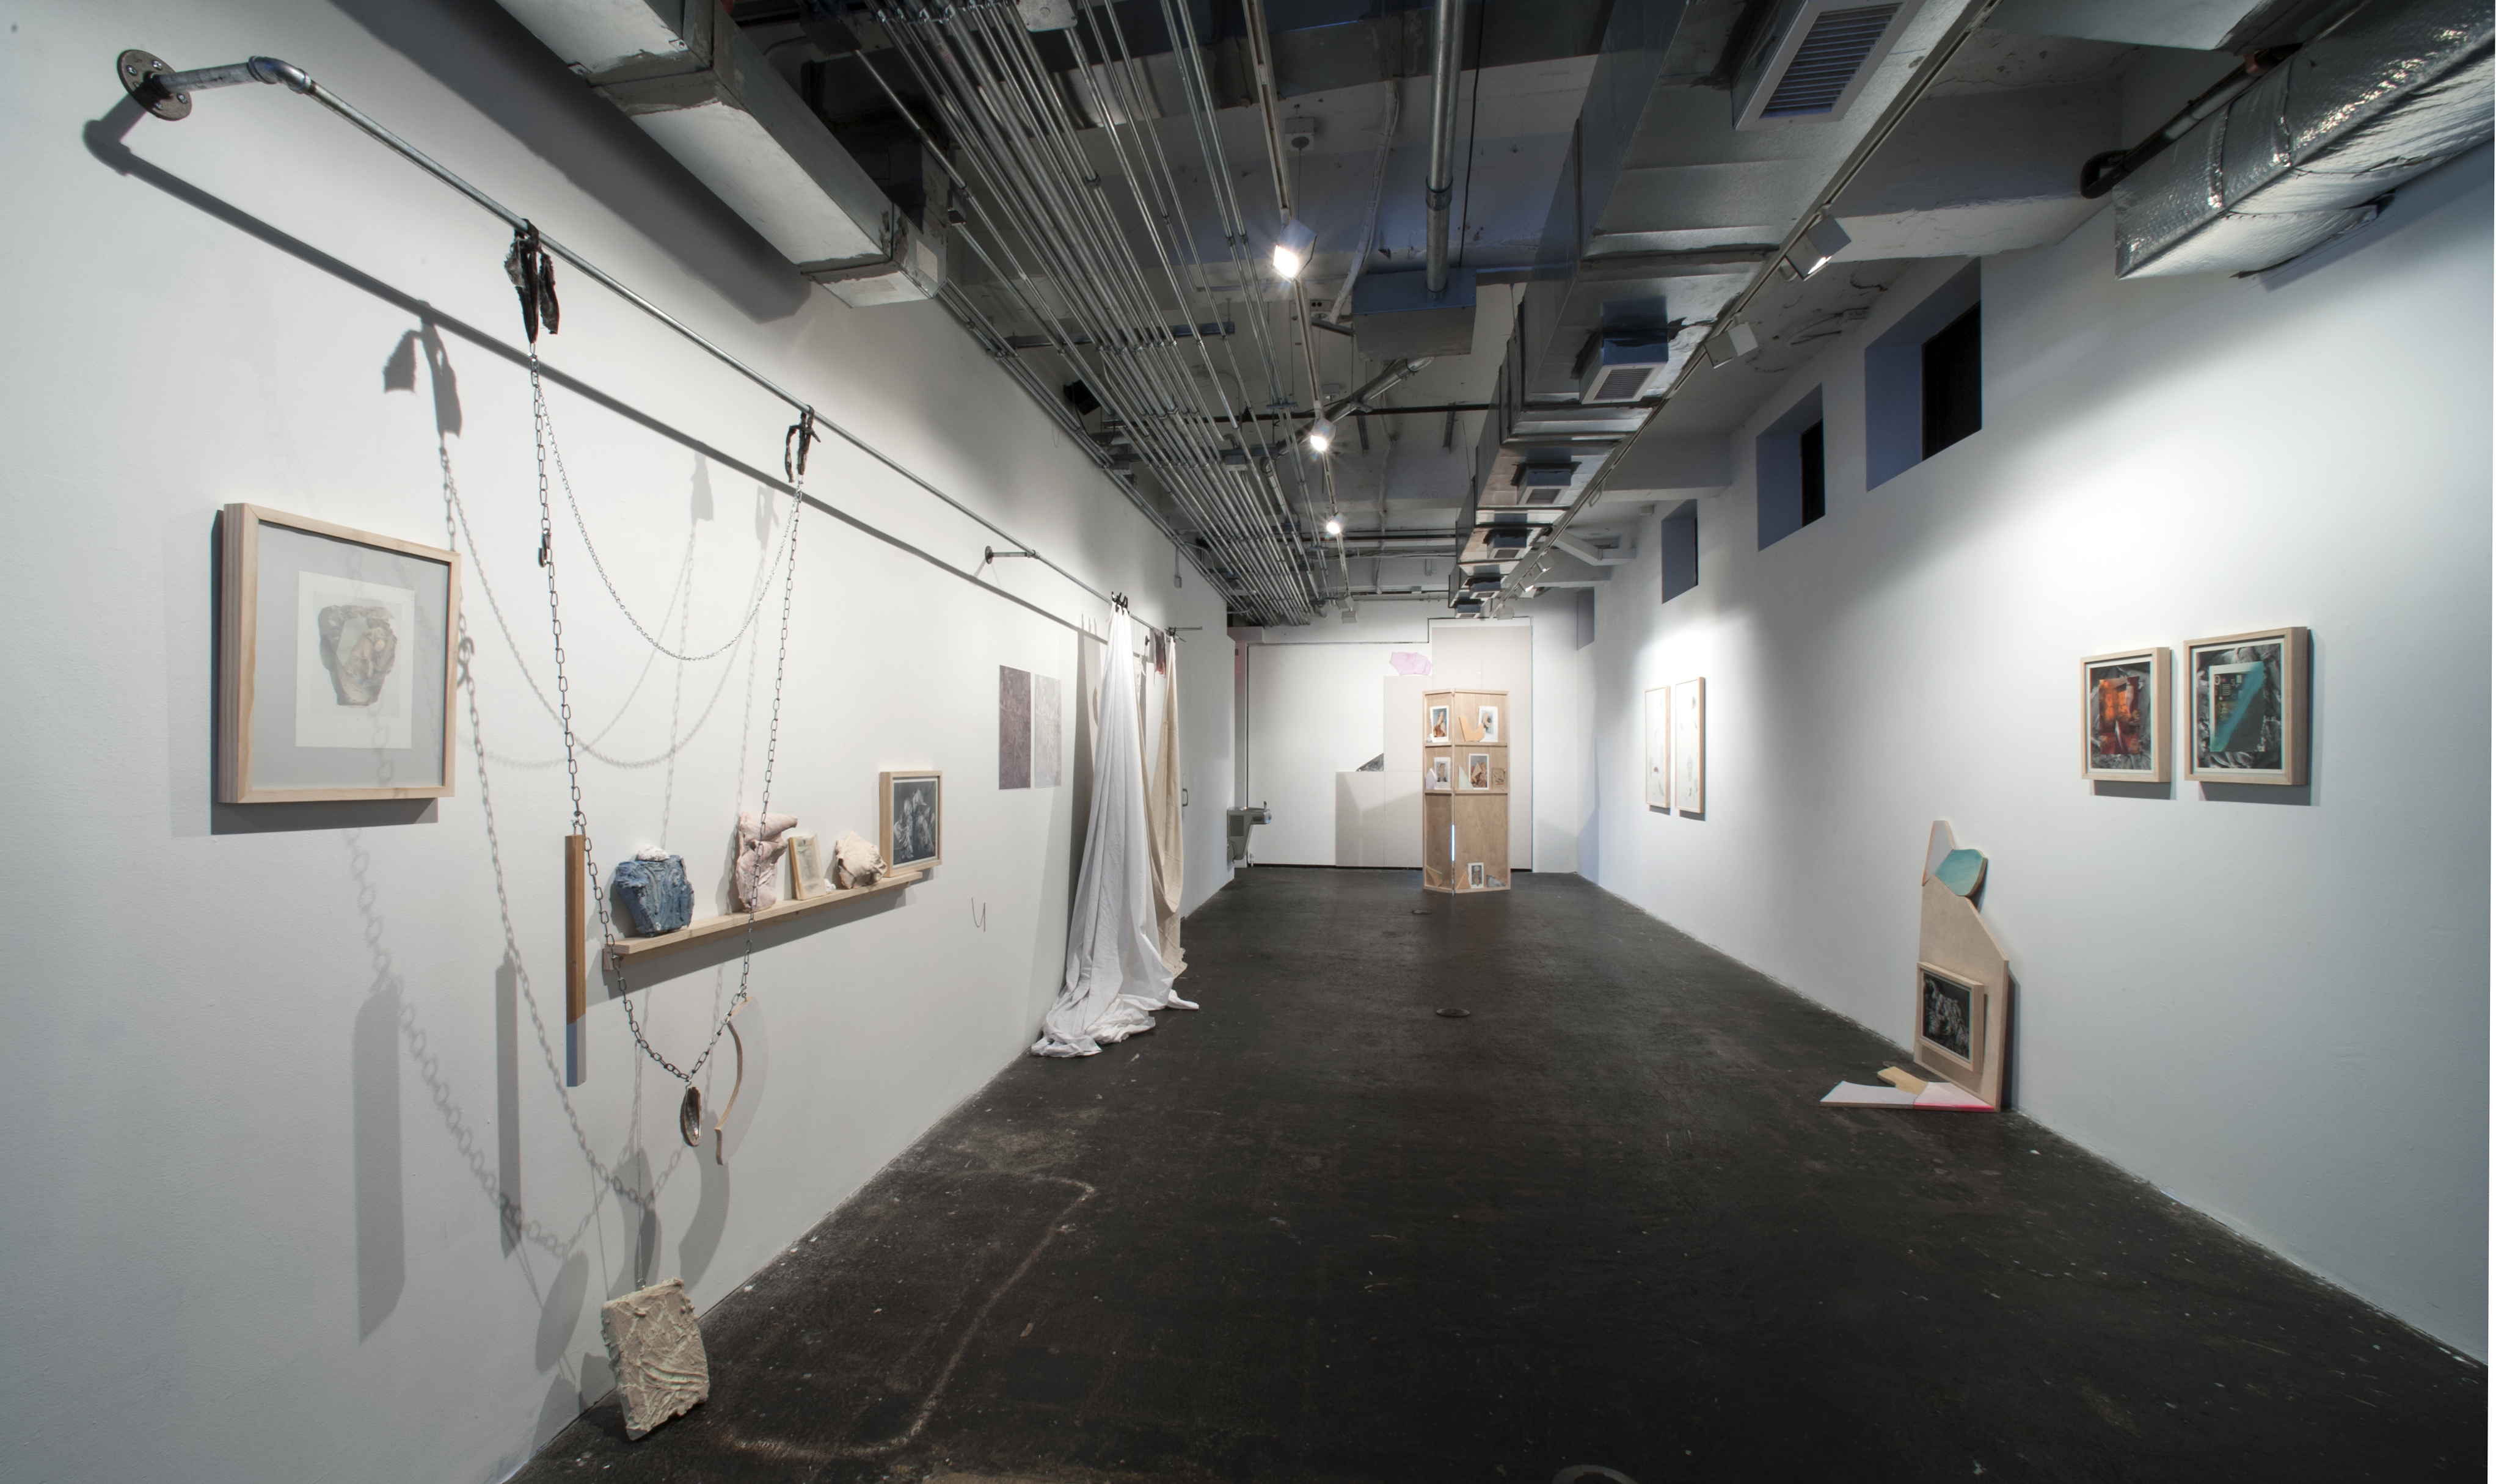 Fake Empire, 2013, collaborative exhibition with Lauren Rice, Flashpoint gallery, Washington, DC